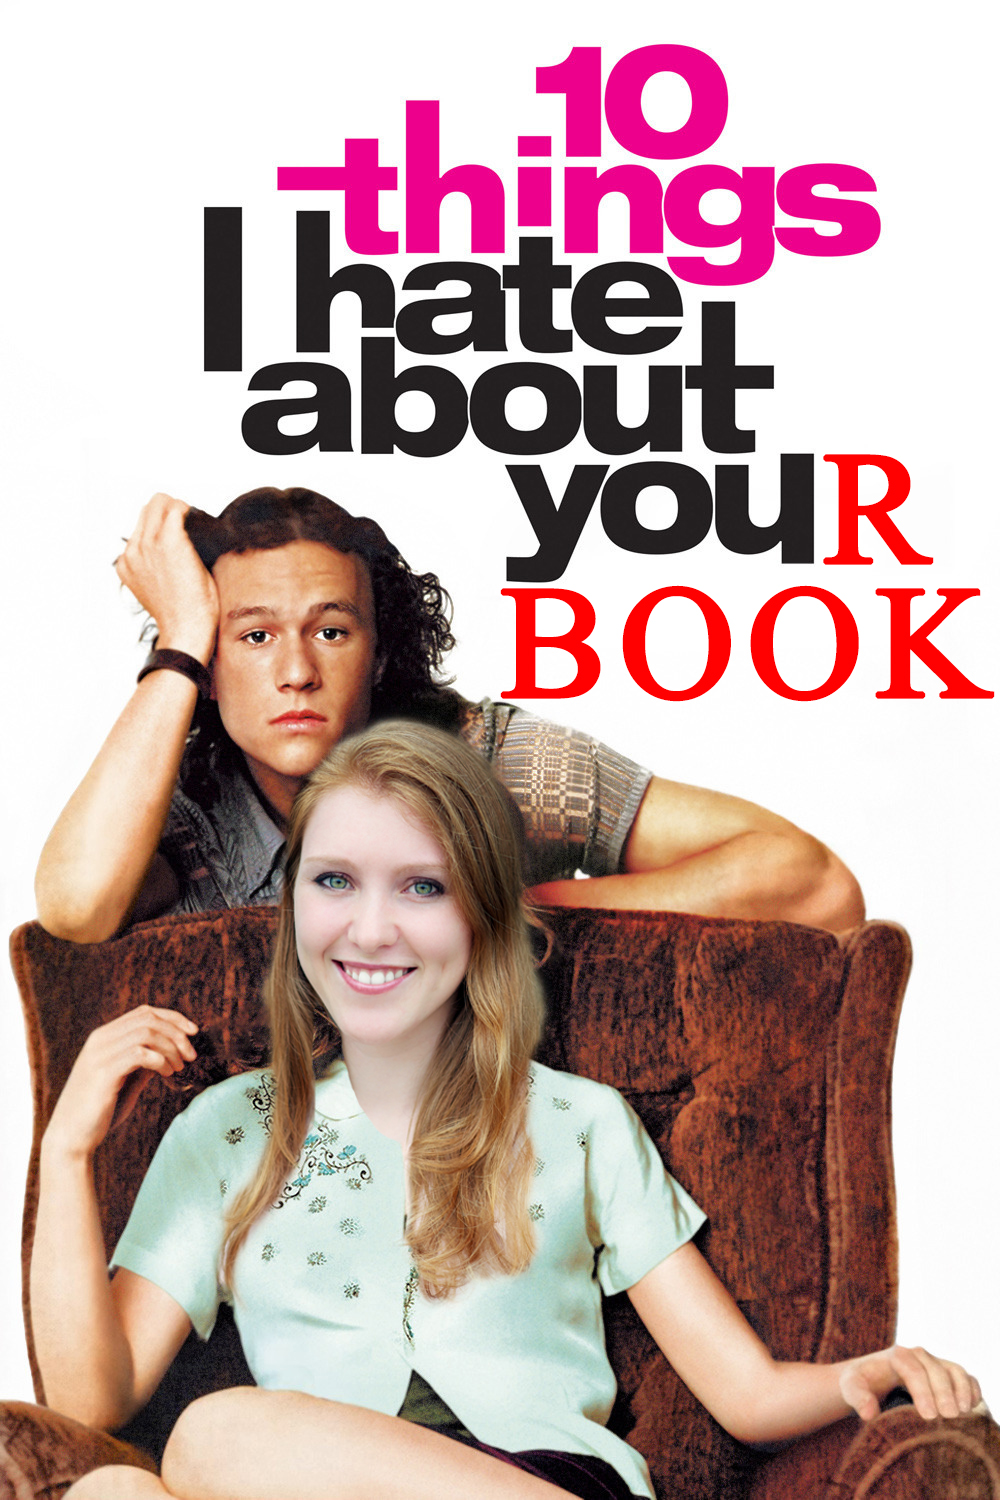 10 Things I Hate About Your Book post image